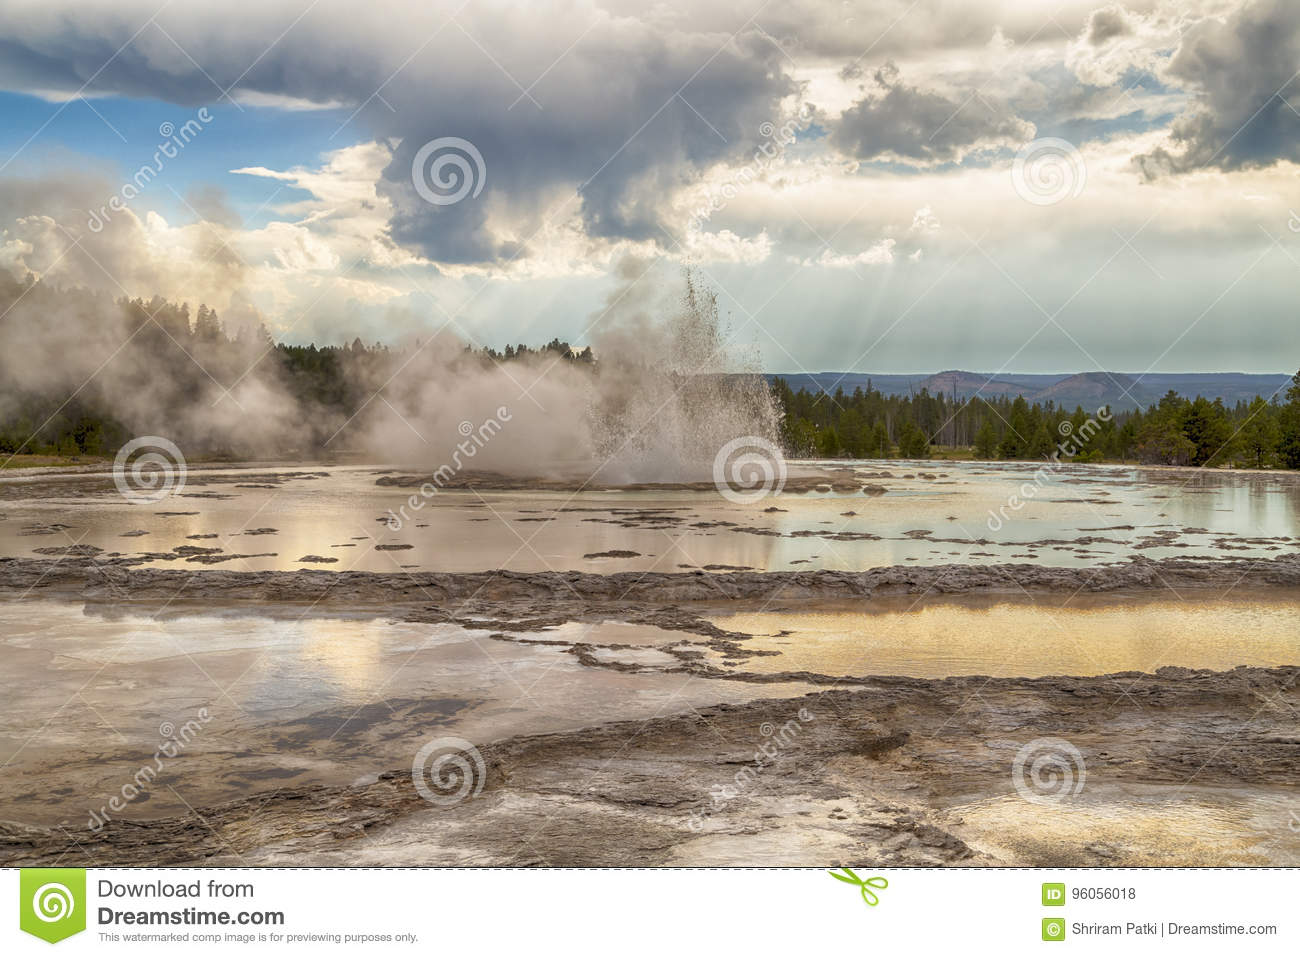 Erupting Great Fountain Geyser in Yellowstone National Park, Wyoming, USA